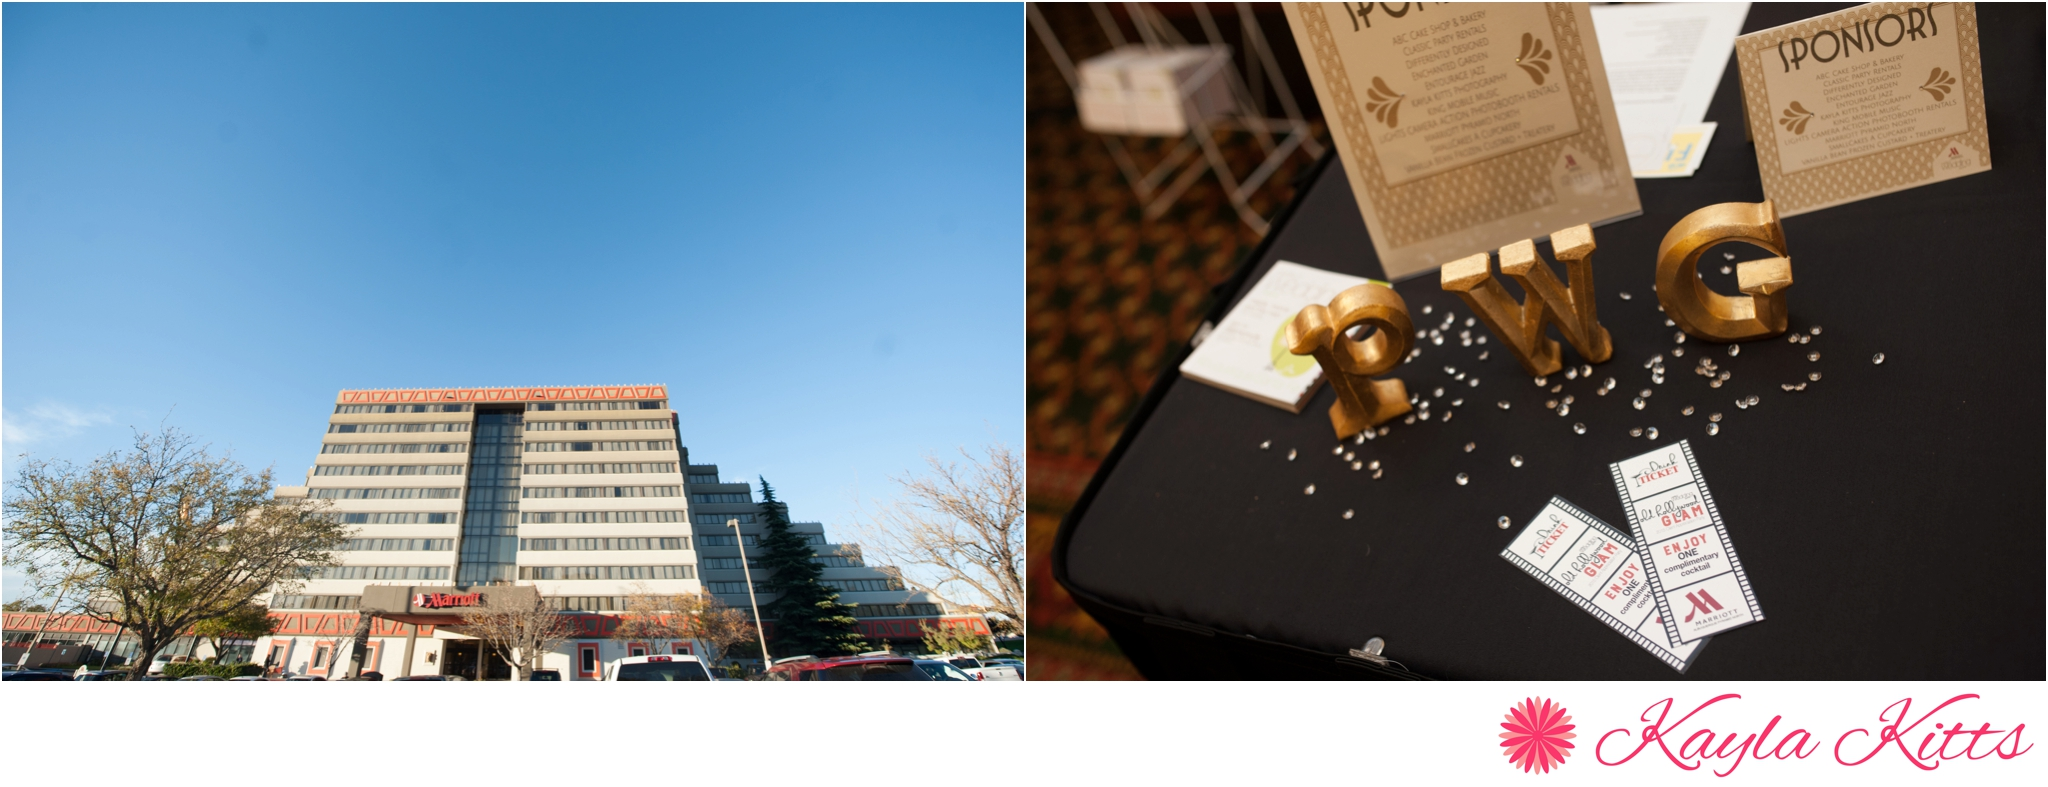 kayla kitts photography - perfect wedding guide - client appreciation party - albuqueruqe marriott_0001.jpg